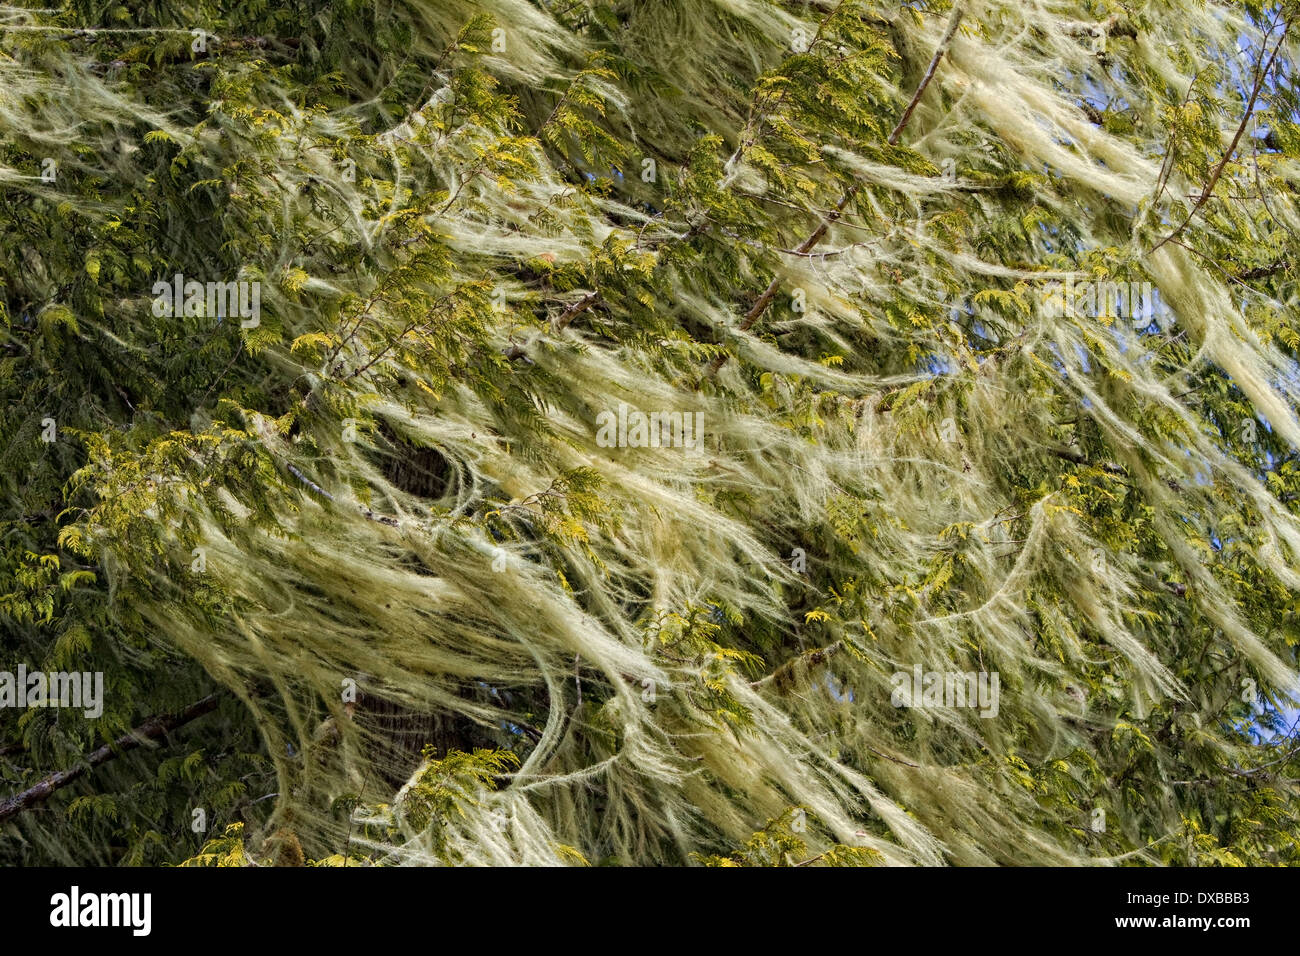 Lichen blowing in wind on tree. Stock Photo